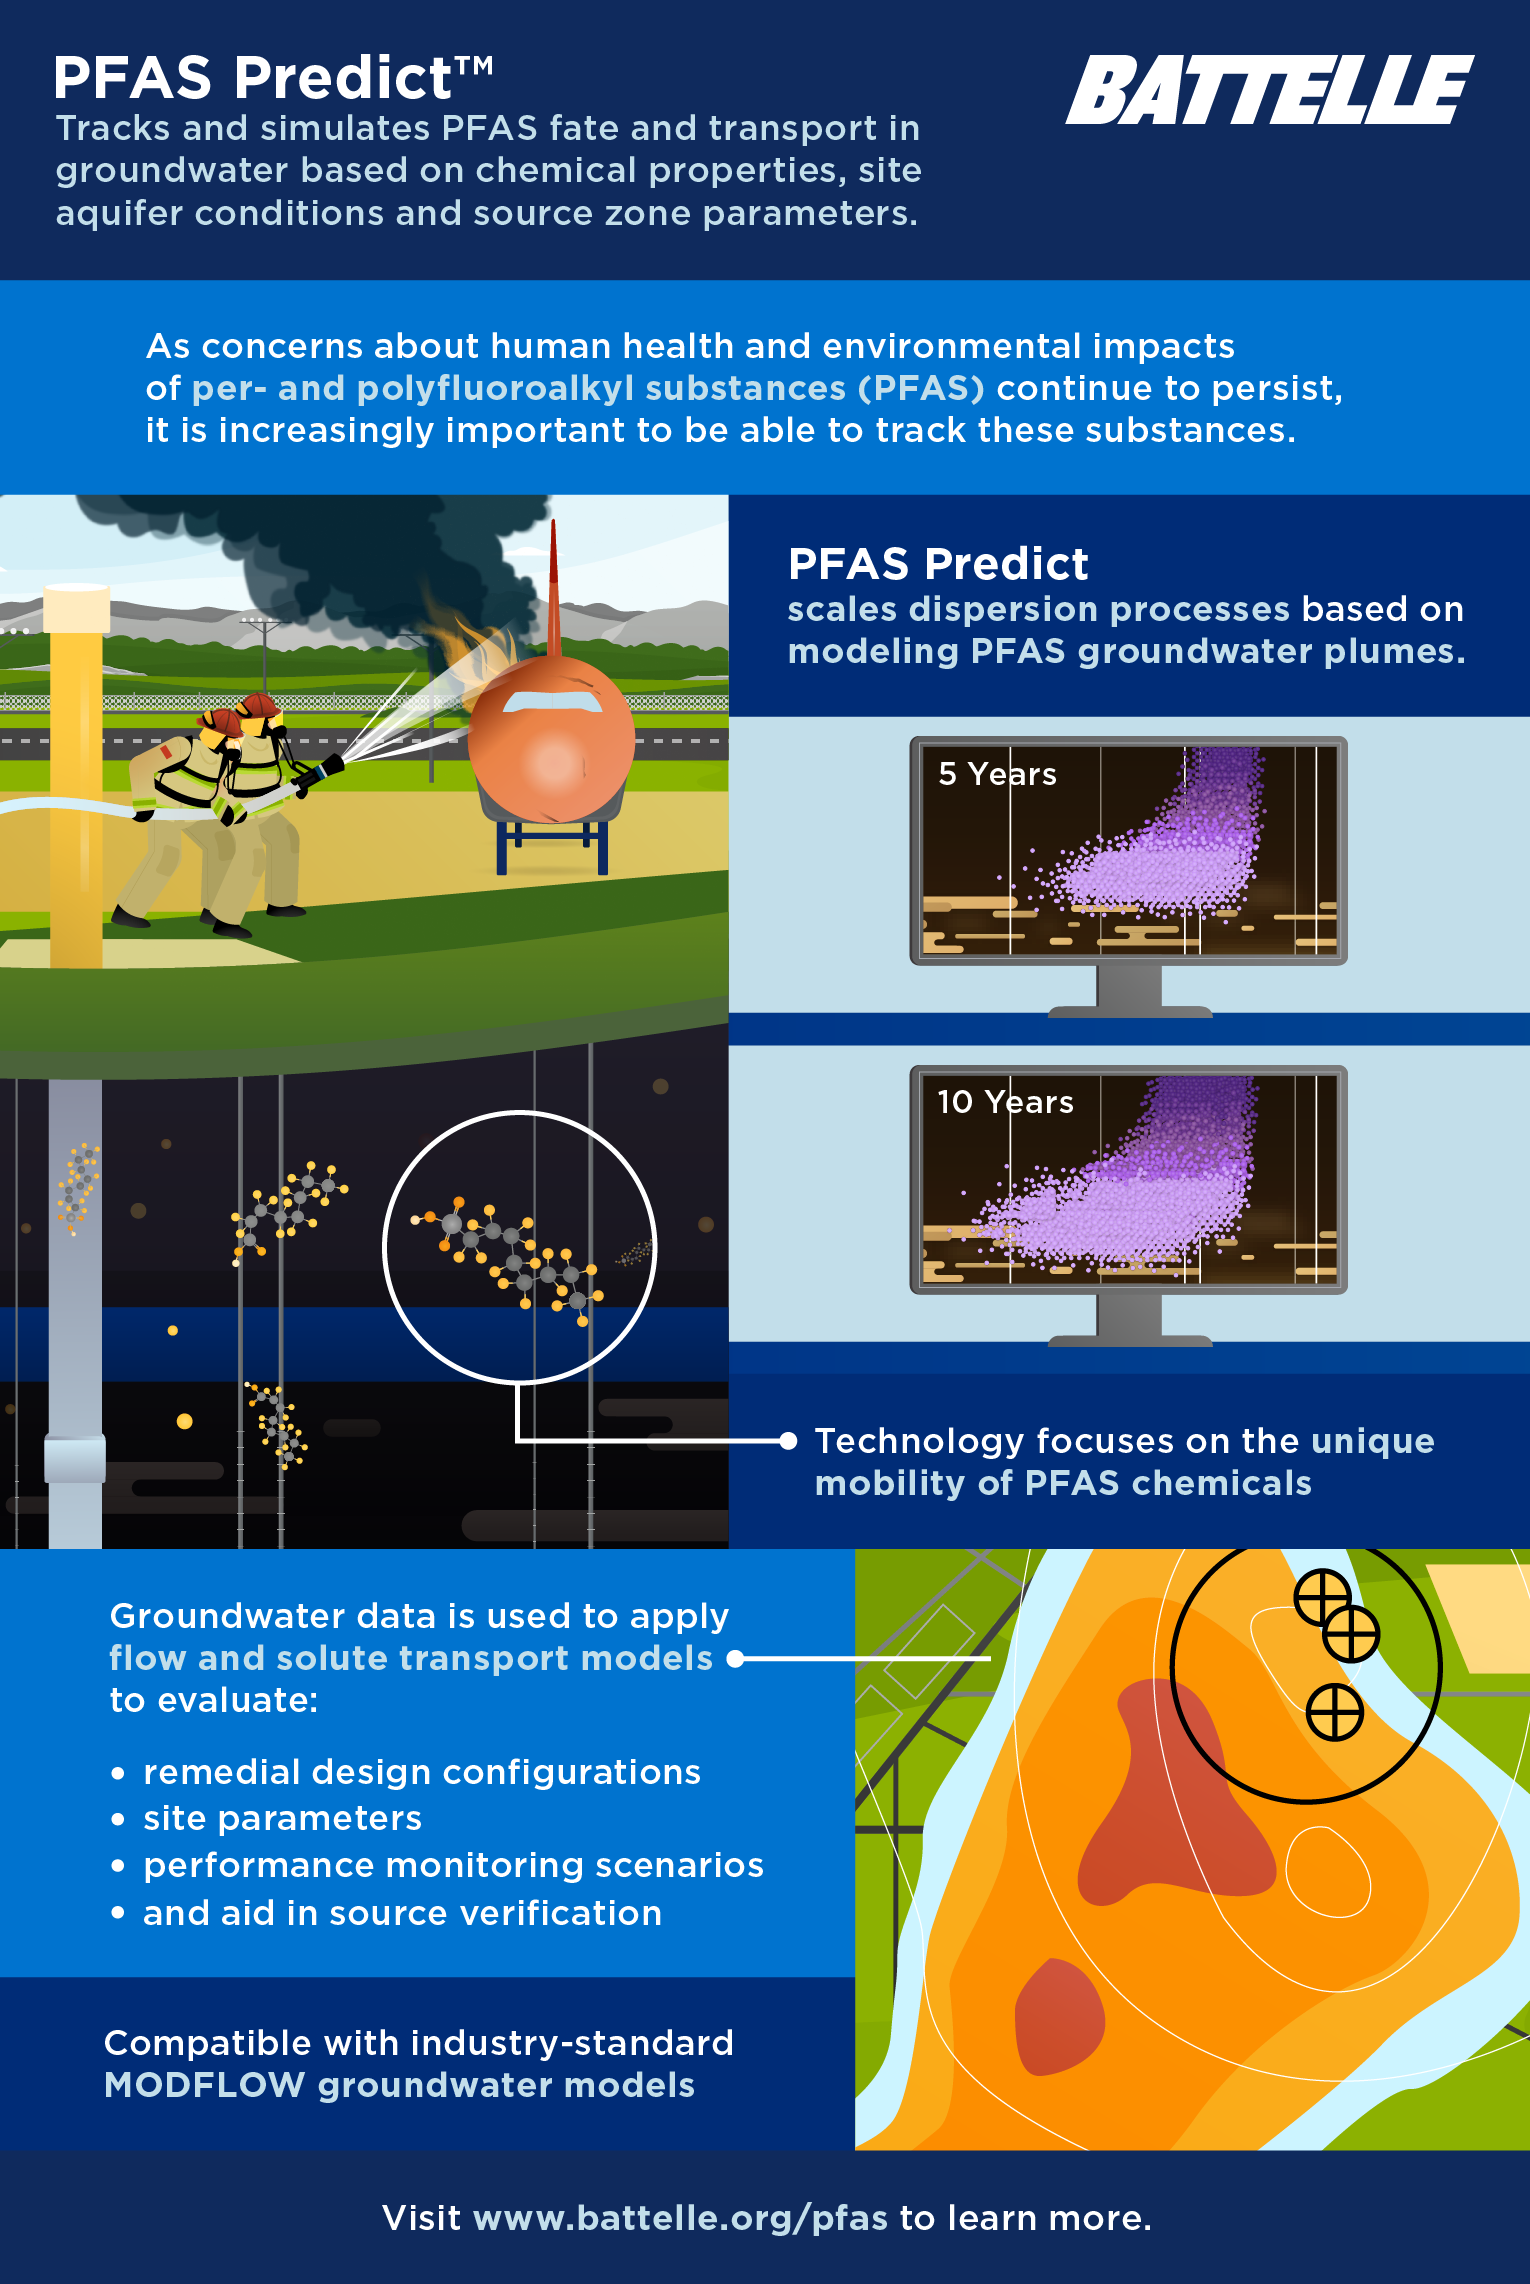 Infographic showing details of Battelle's PFAS Predict technology